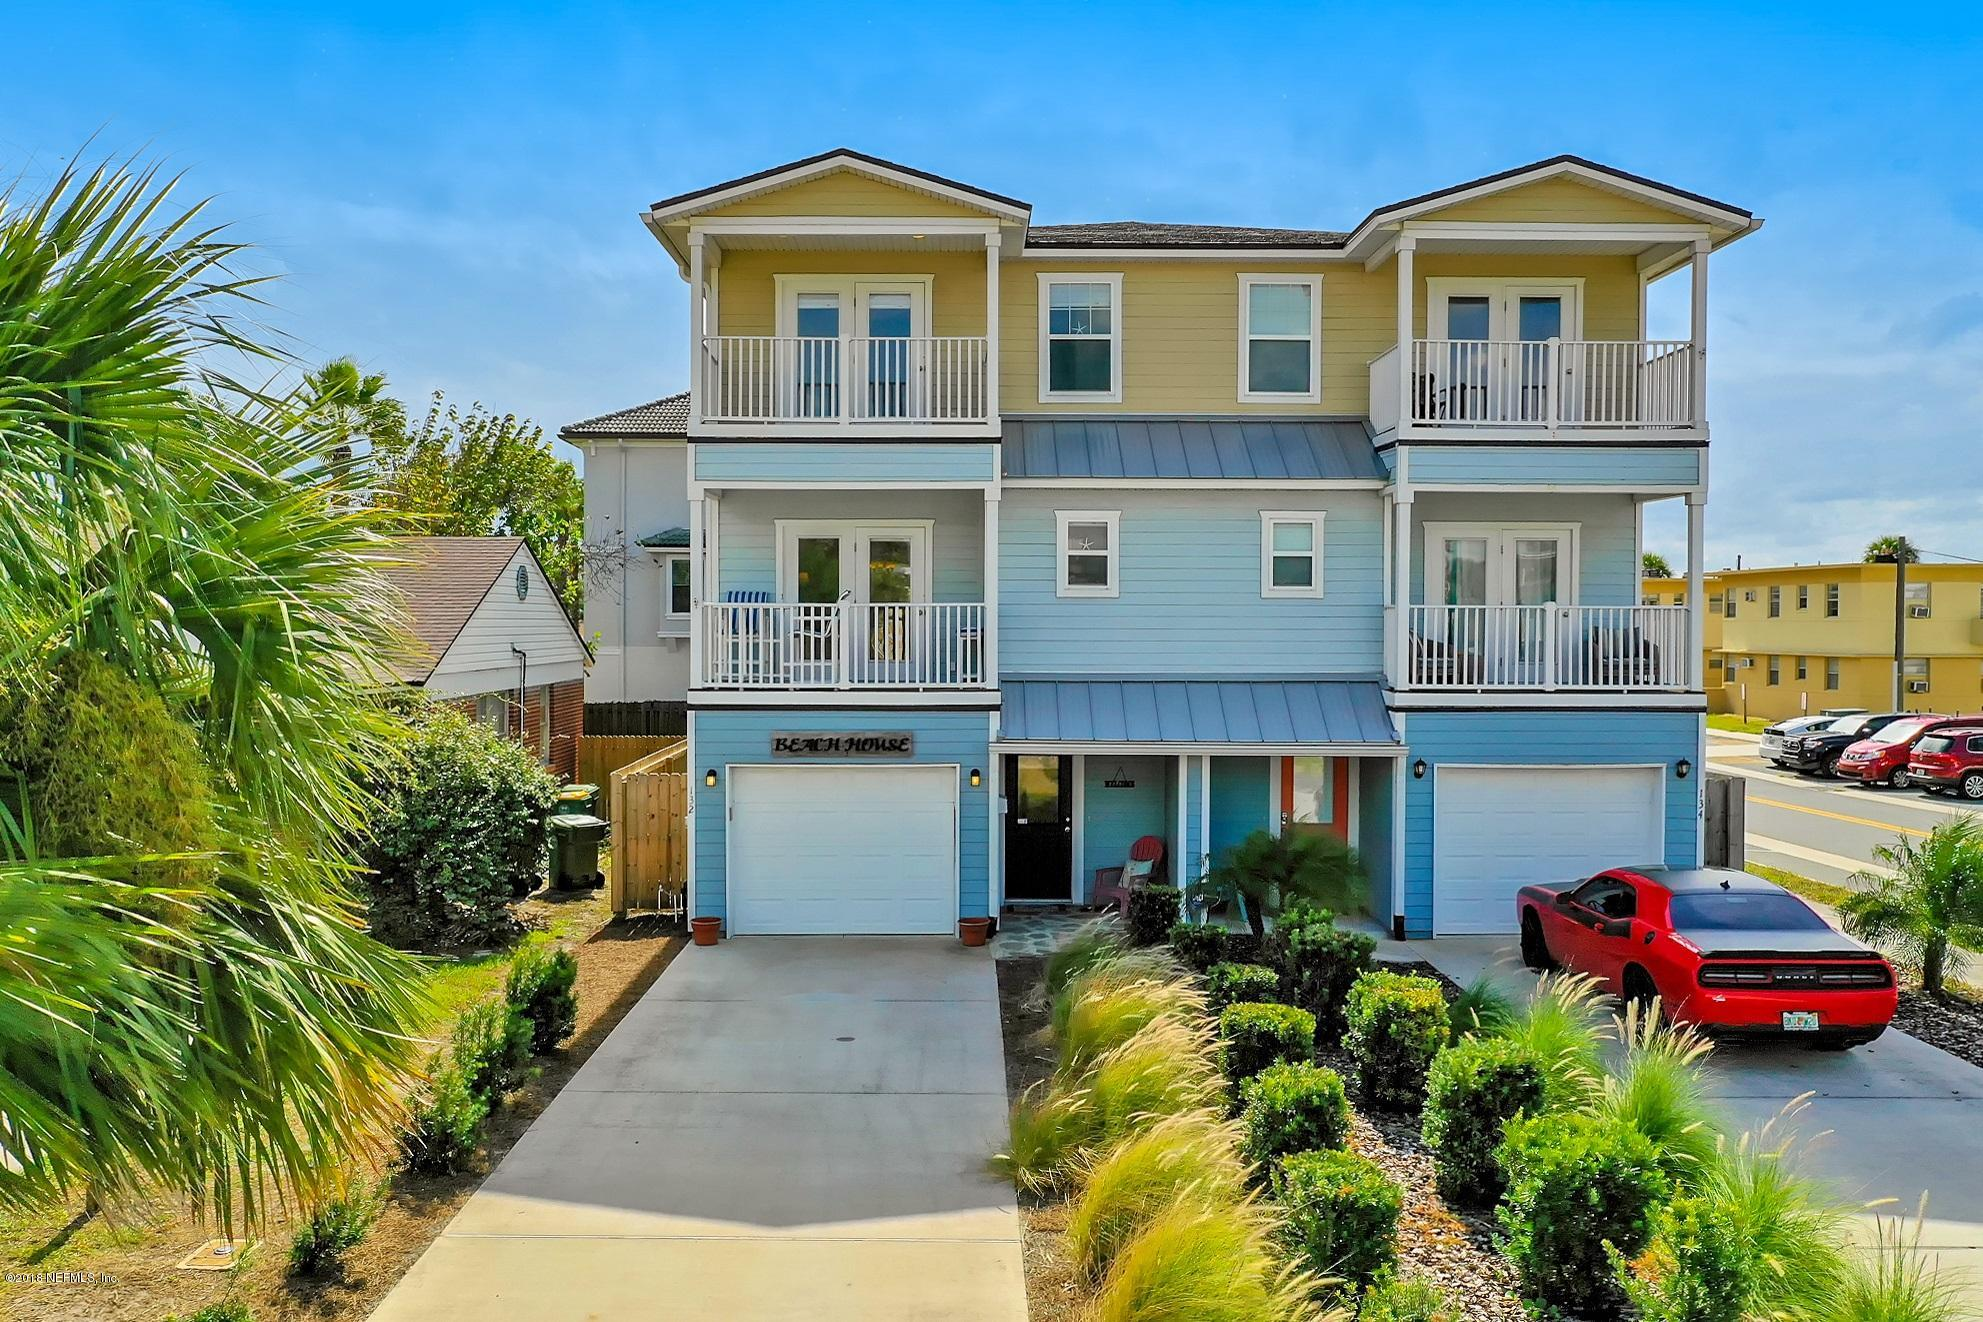 132 9TH, JACKSONVILLE BEACH, FLORIDA 32250, 4 Bedrooms Bedrooms, ,3 BathroomsBathrooms,Residential - townhome,For sale,9TH,964227